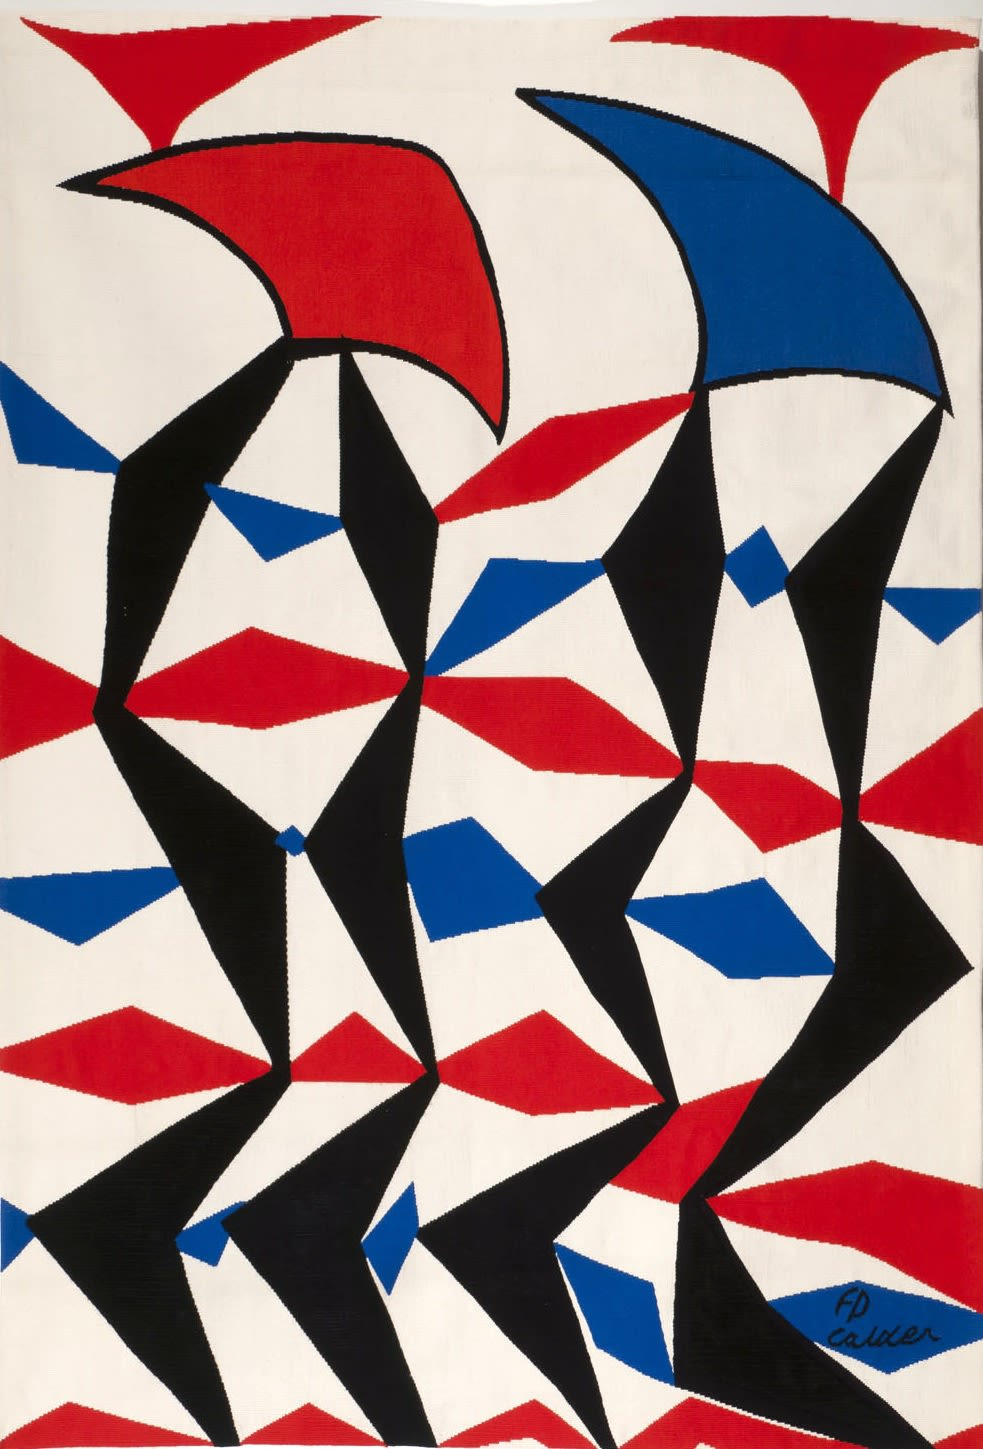 Alexander CALDER (1898 – 1976) L'Etoffe Tapestry made for the artist by Pinton Aubusson in an edition of 6 plus 2 artists proofs 75 6/8 x 52 ½ inches / 192 x 133 cm Signed and stamped